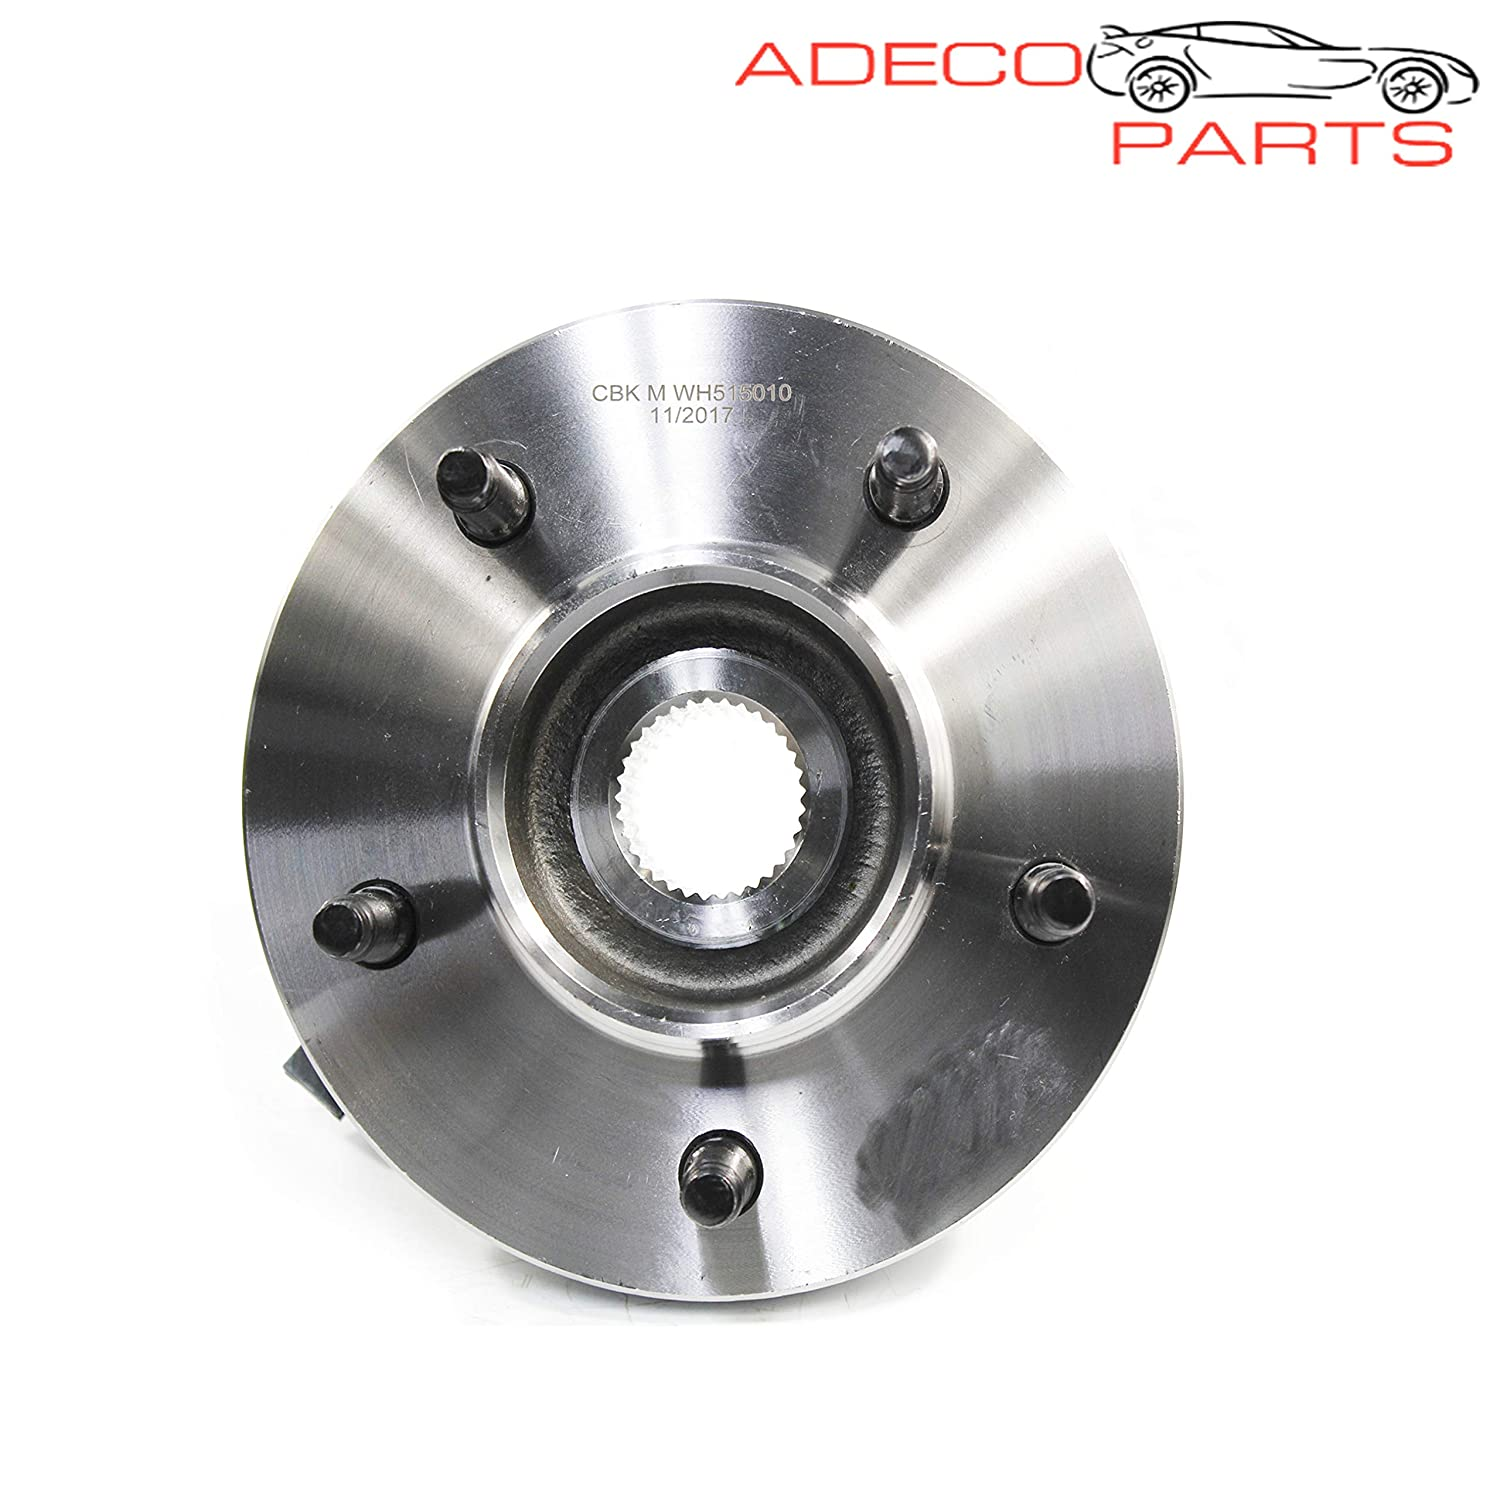 AdecoAutoParts/© Two 515010 BR930318 Front Wheel Bearing /& Hub Assembly for Ford F-150 1997 1998 1999 2000 4WD